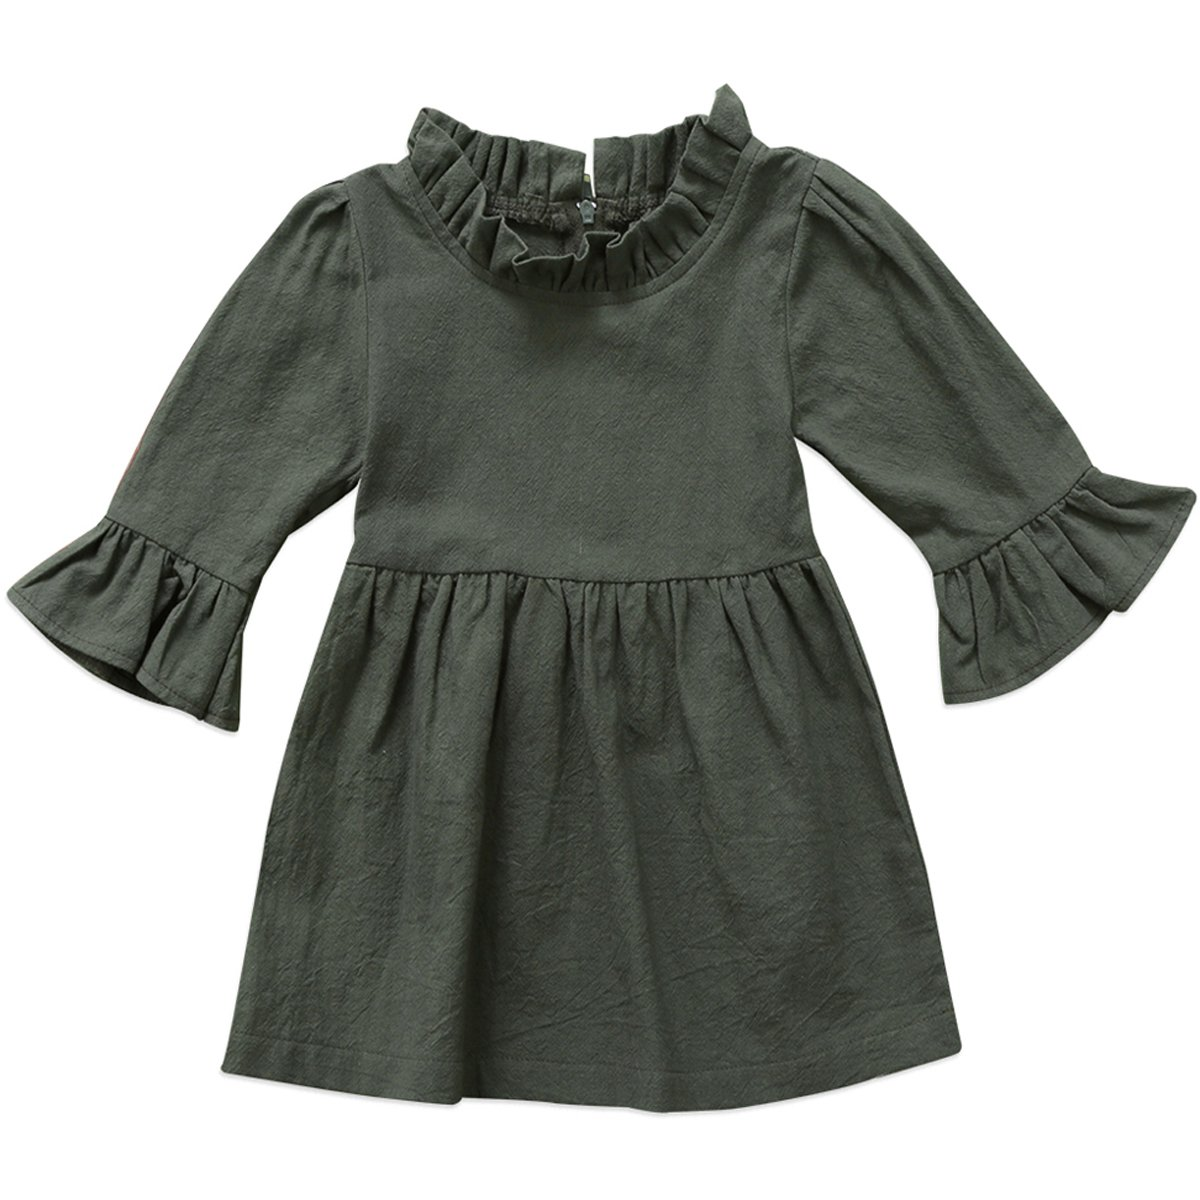 Annvivi Fall & Winter Baby Girls Dark Natural Olive Linen Ruffled Pullover Dress